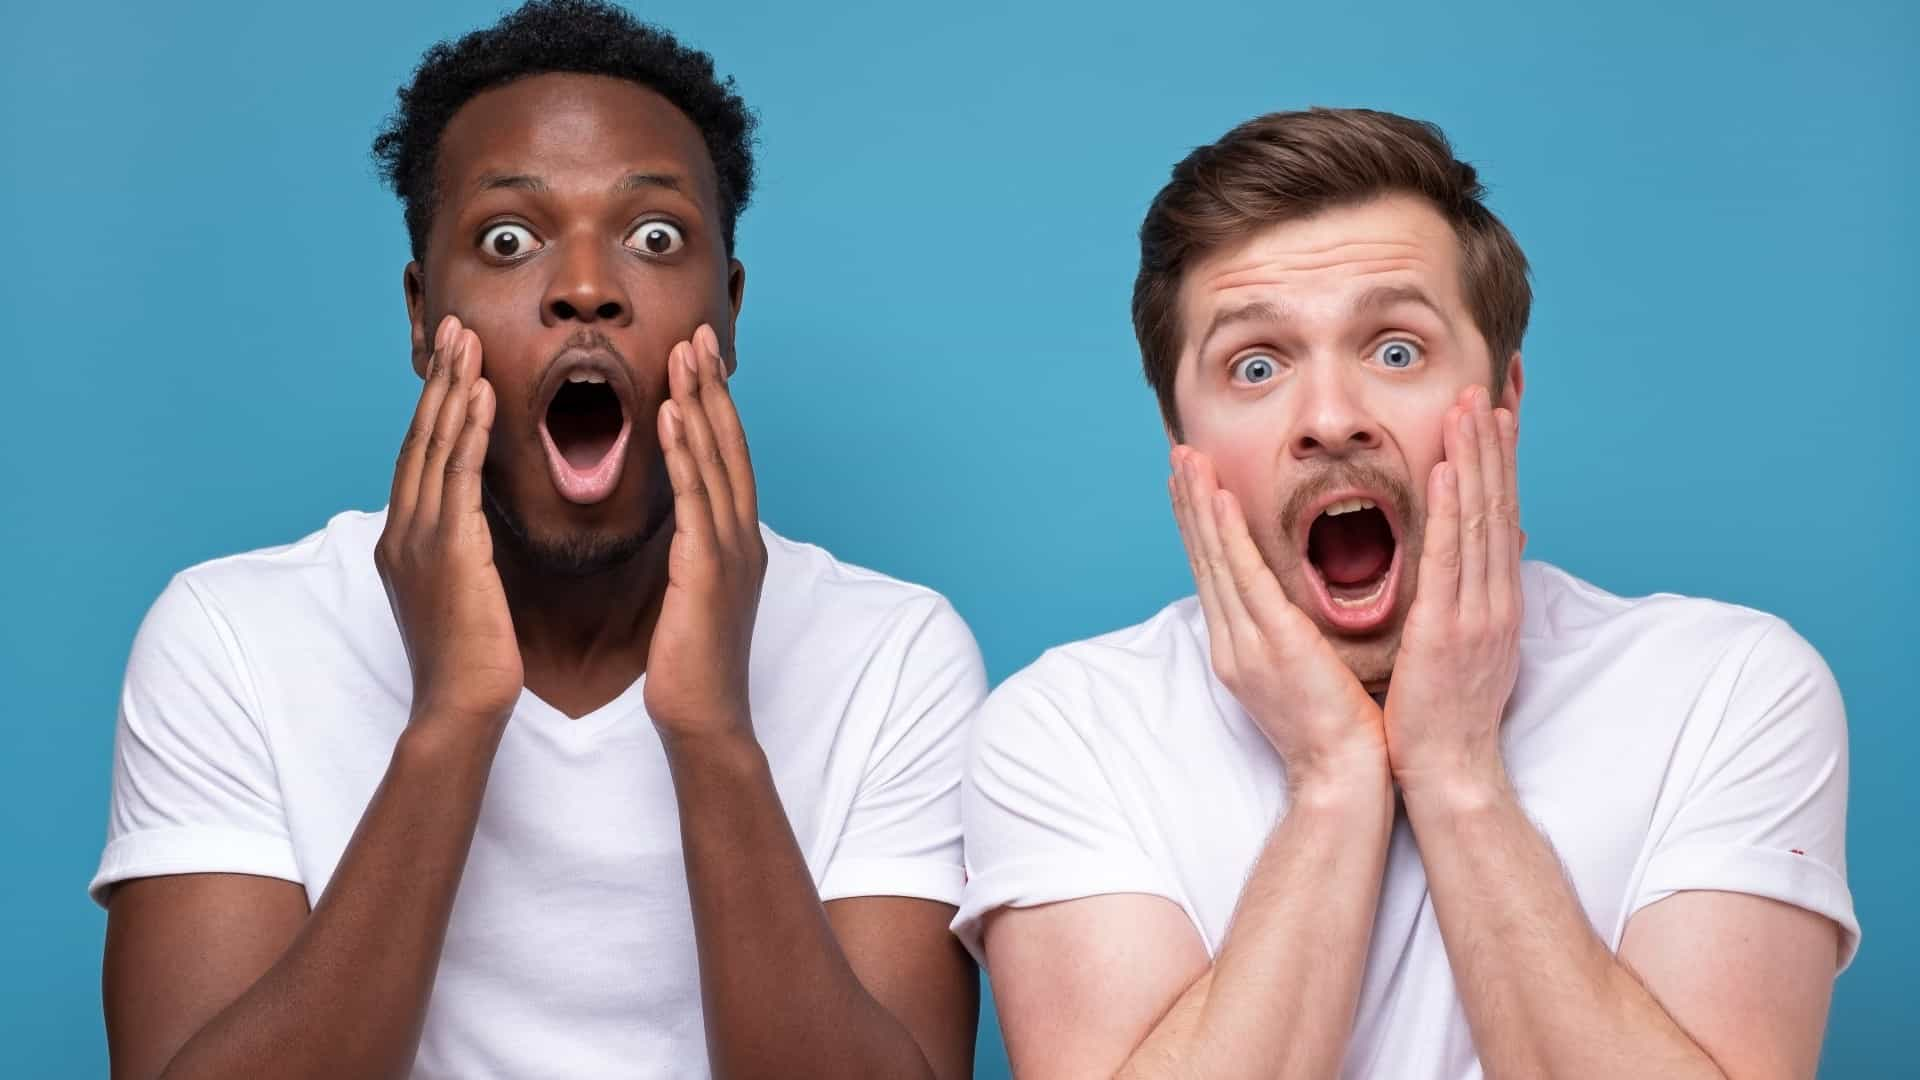 Two men react in shock at Iluka share price drop